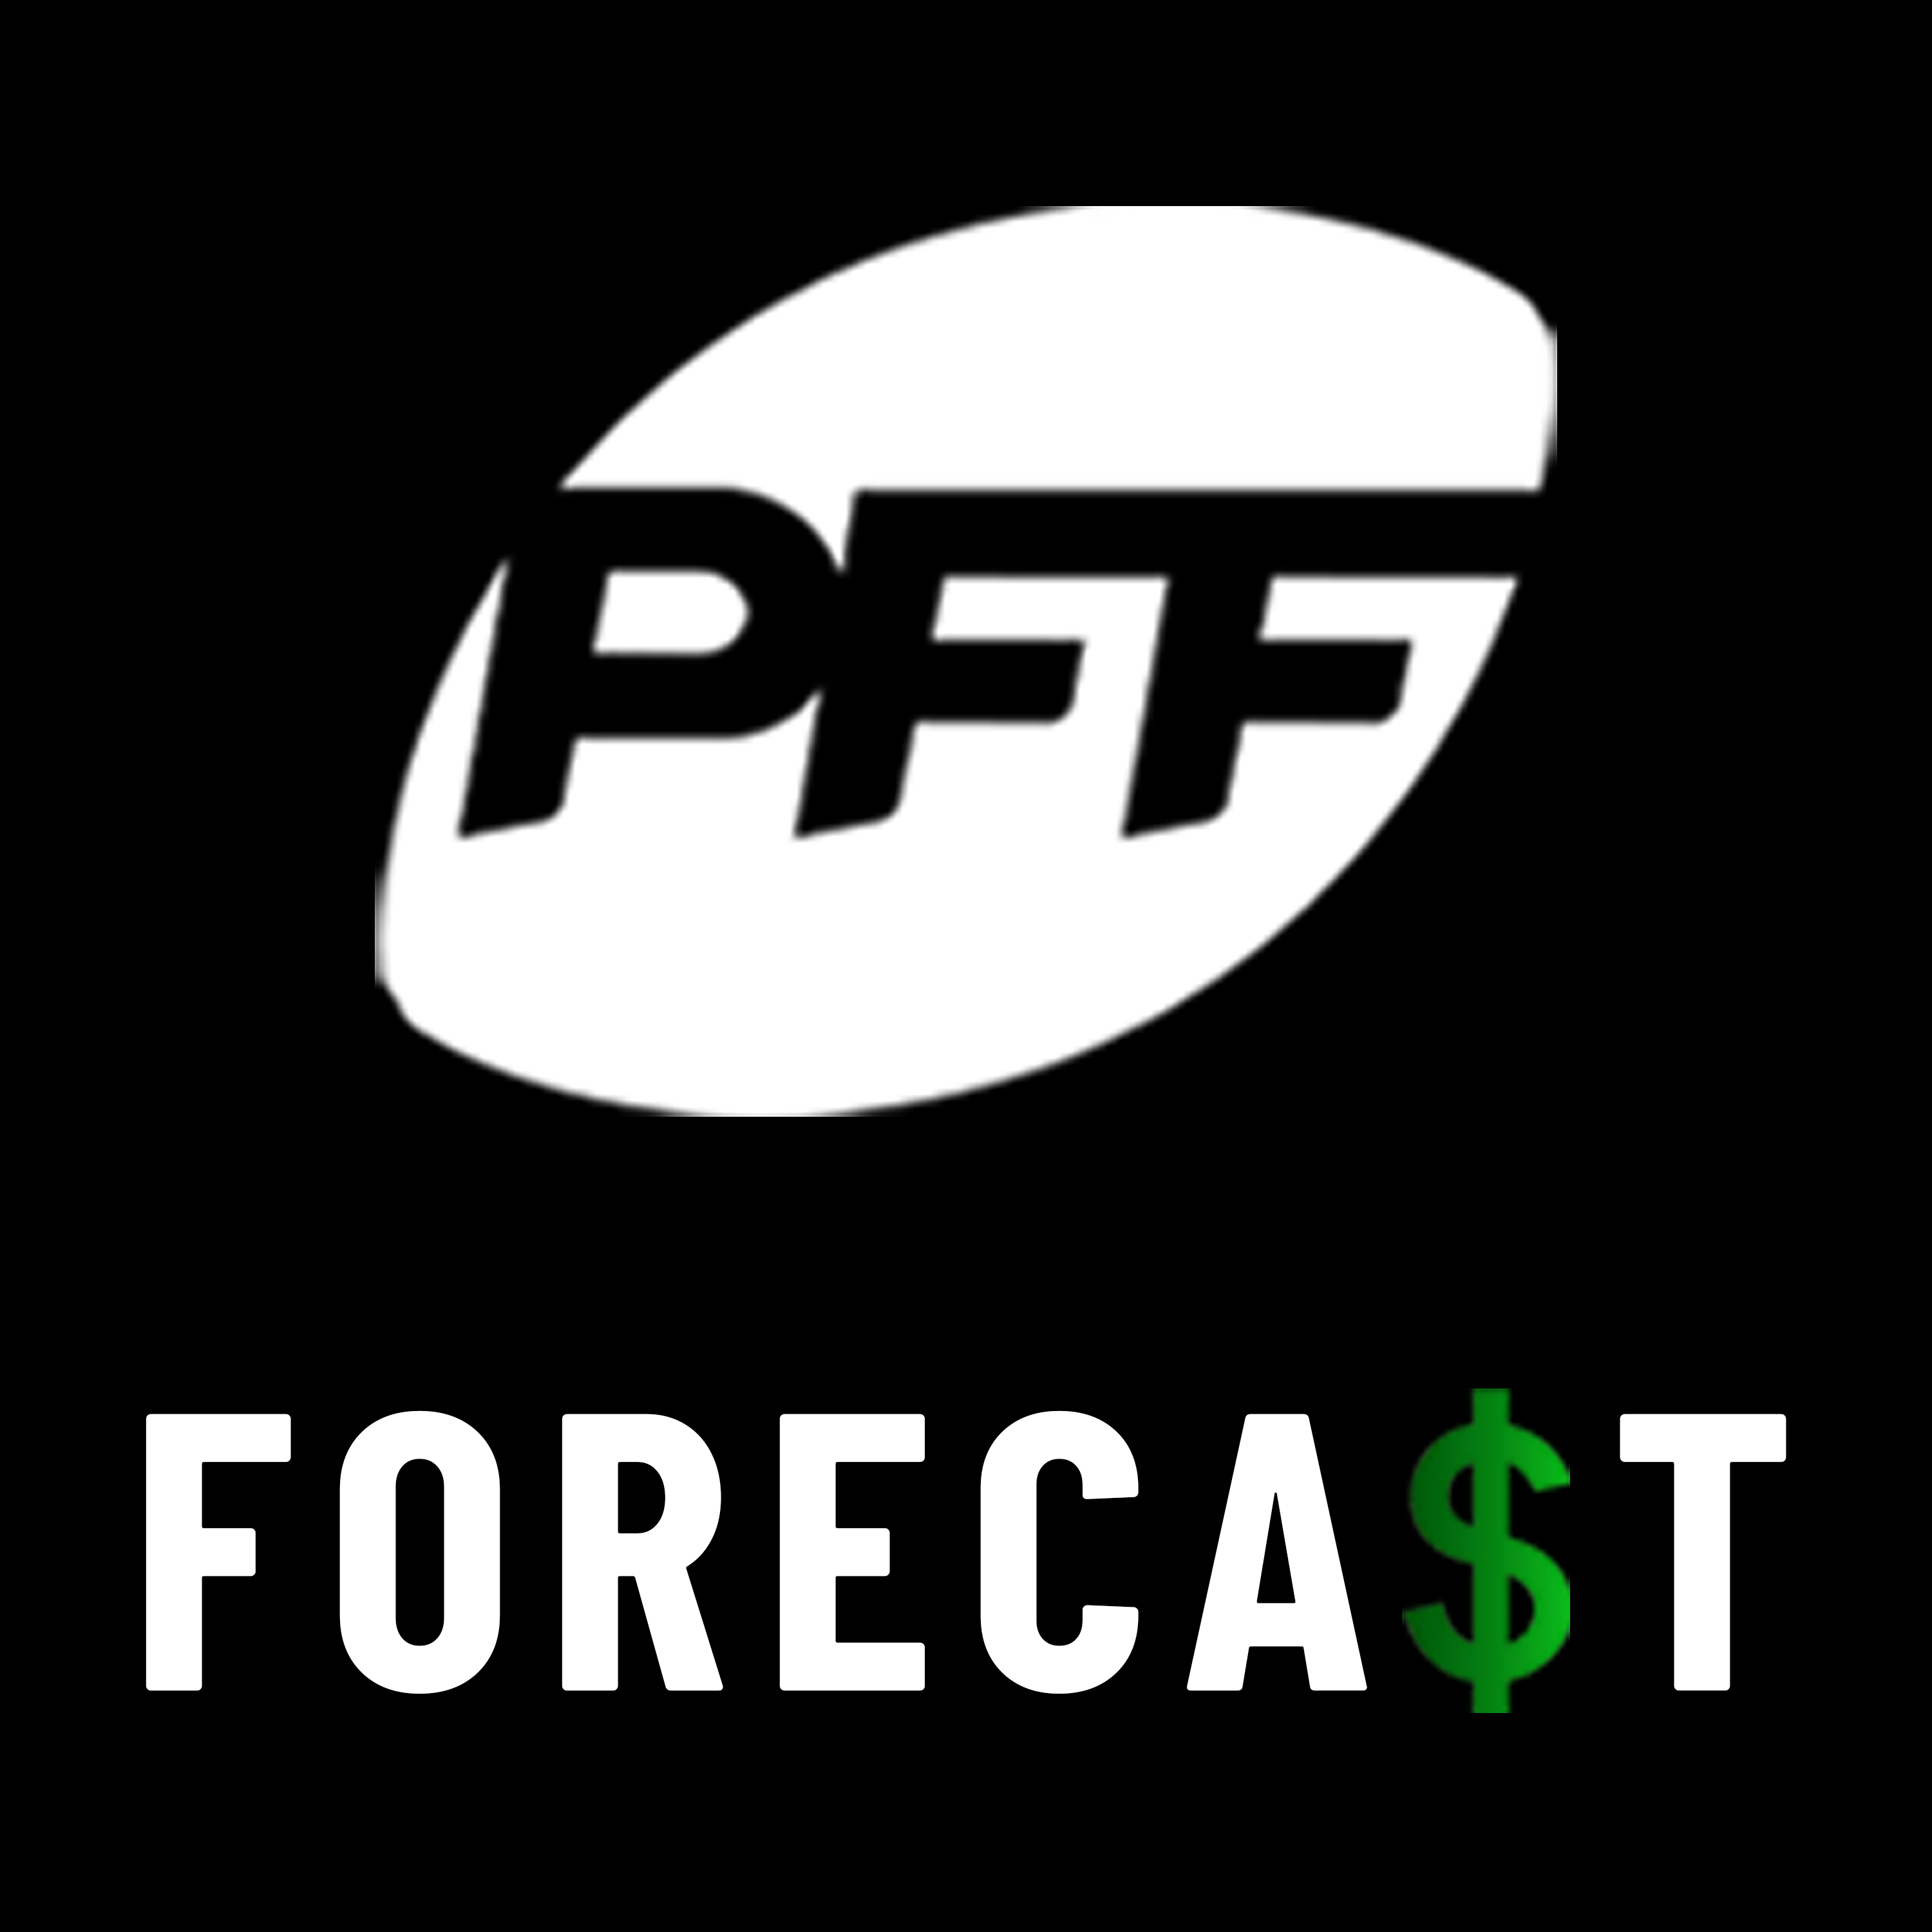 The PFF Forecast